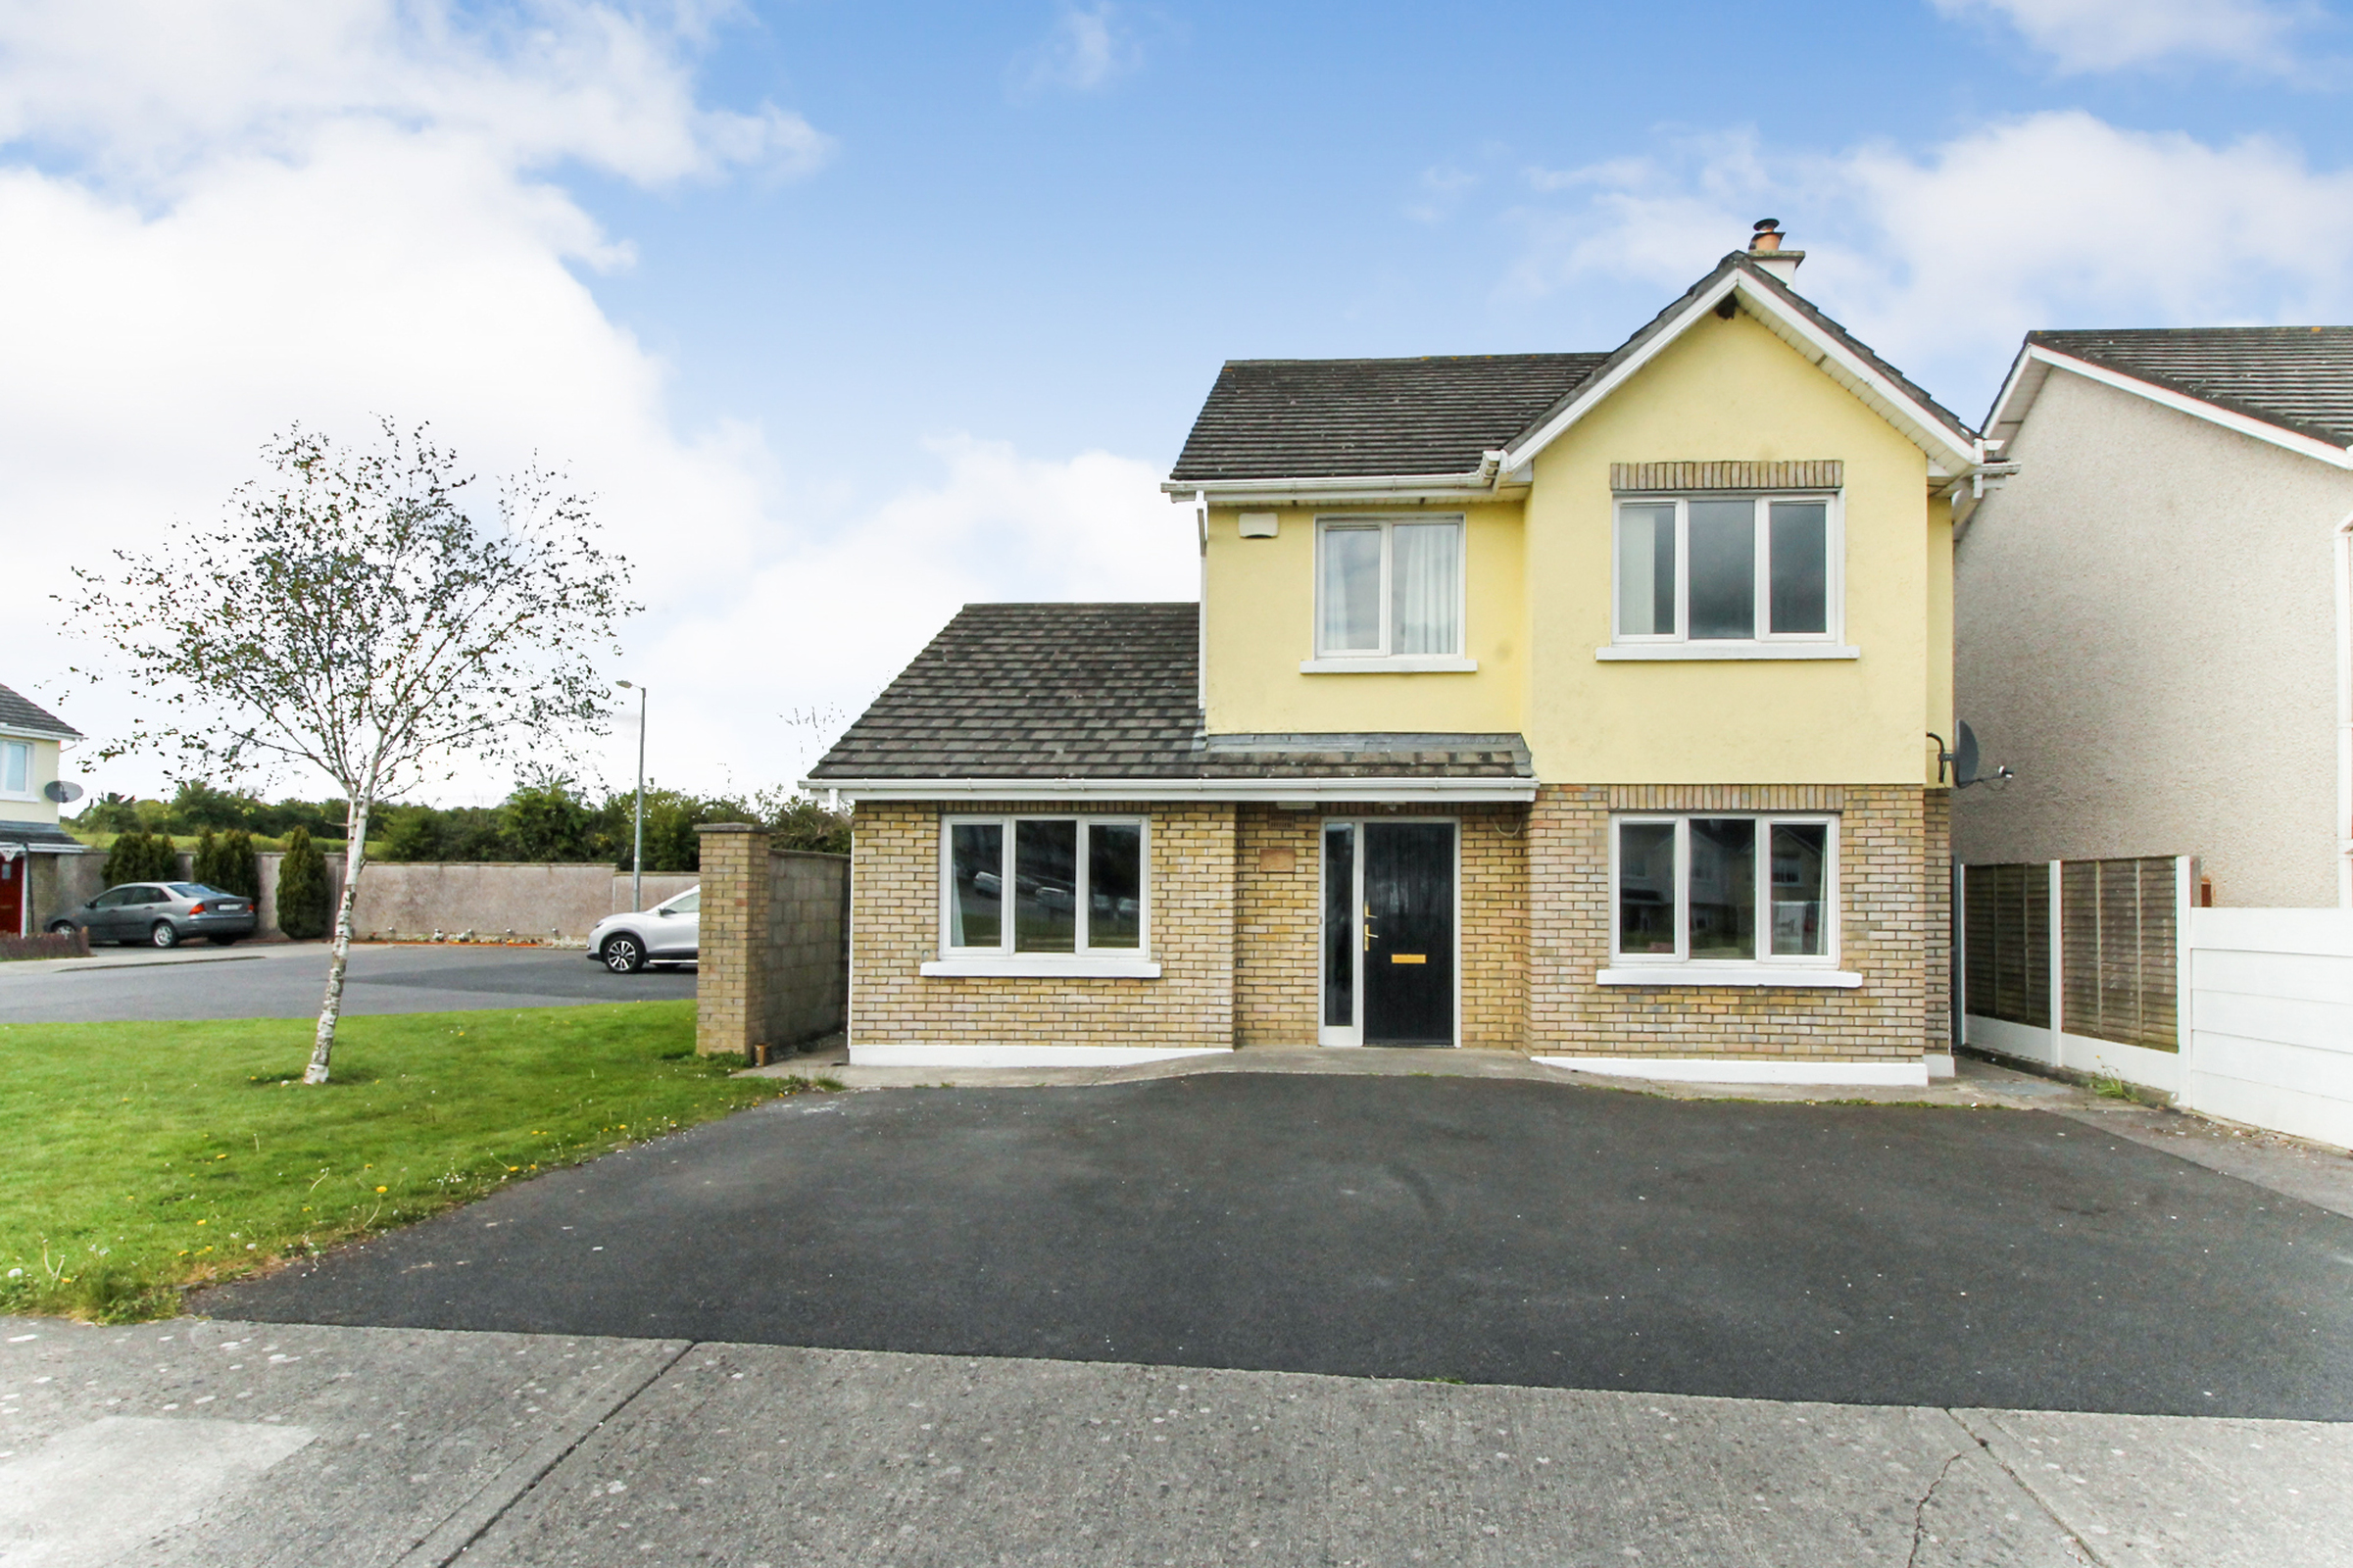 41 Marlstone Manor, Thurles, Co. Tipperary